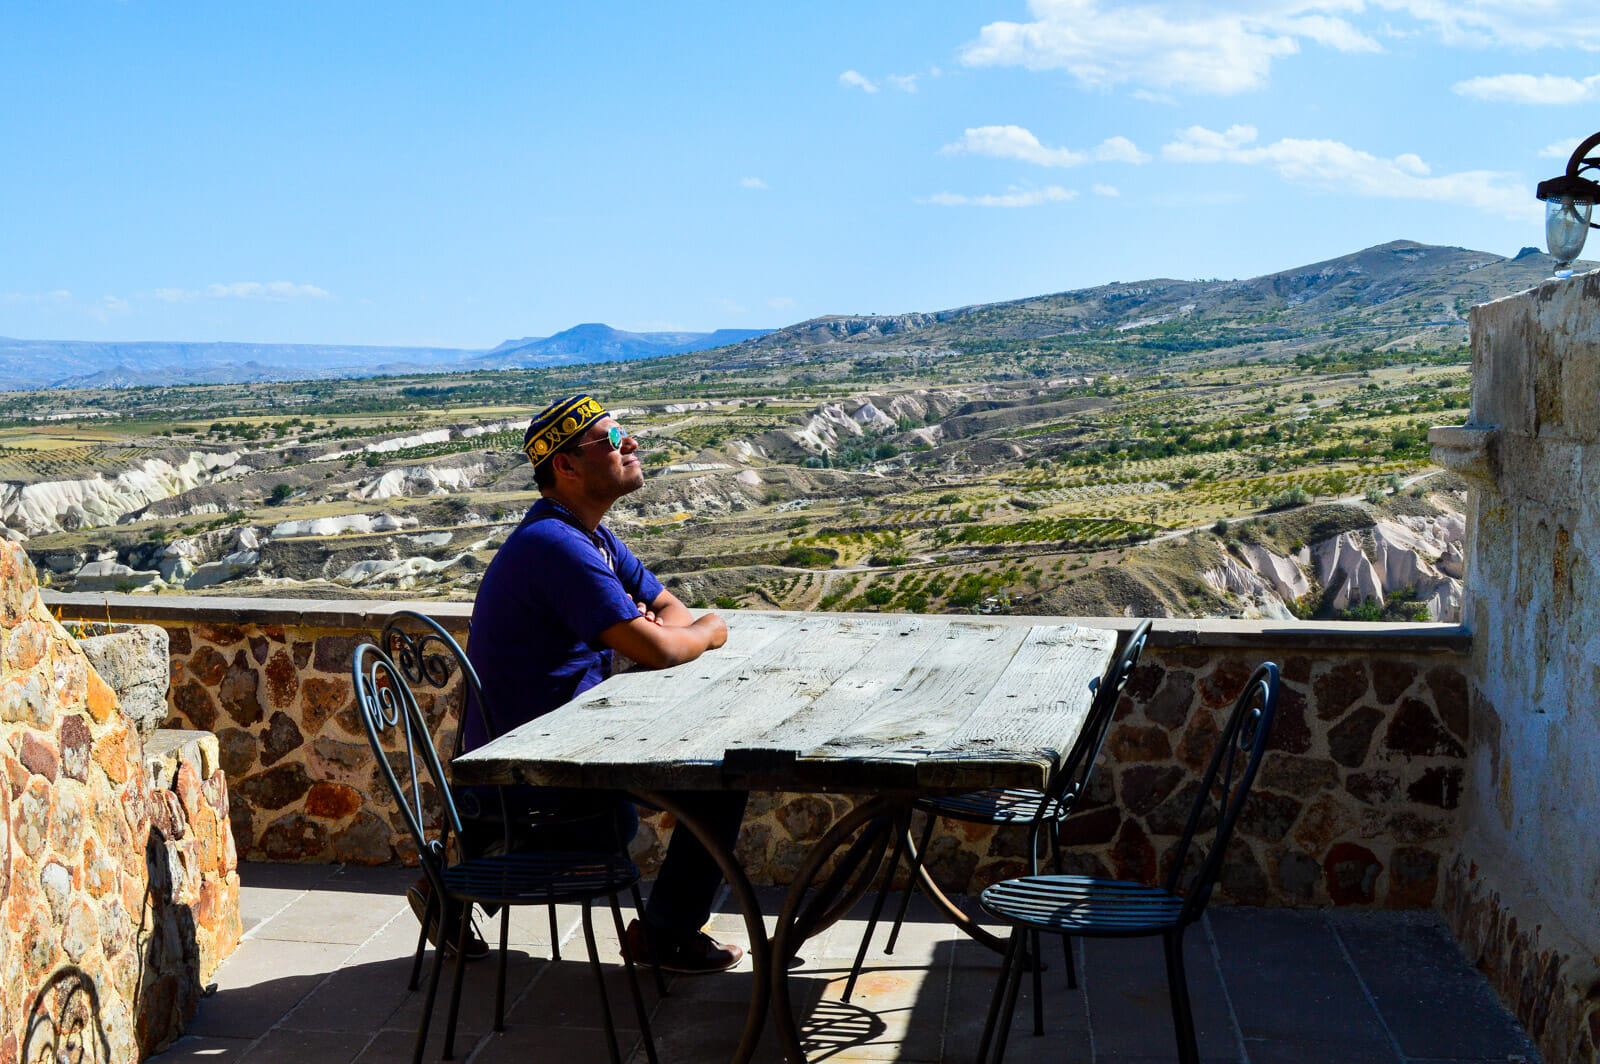 The Man of Wonders staying at a Cave Hotel in Cappadocia